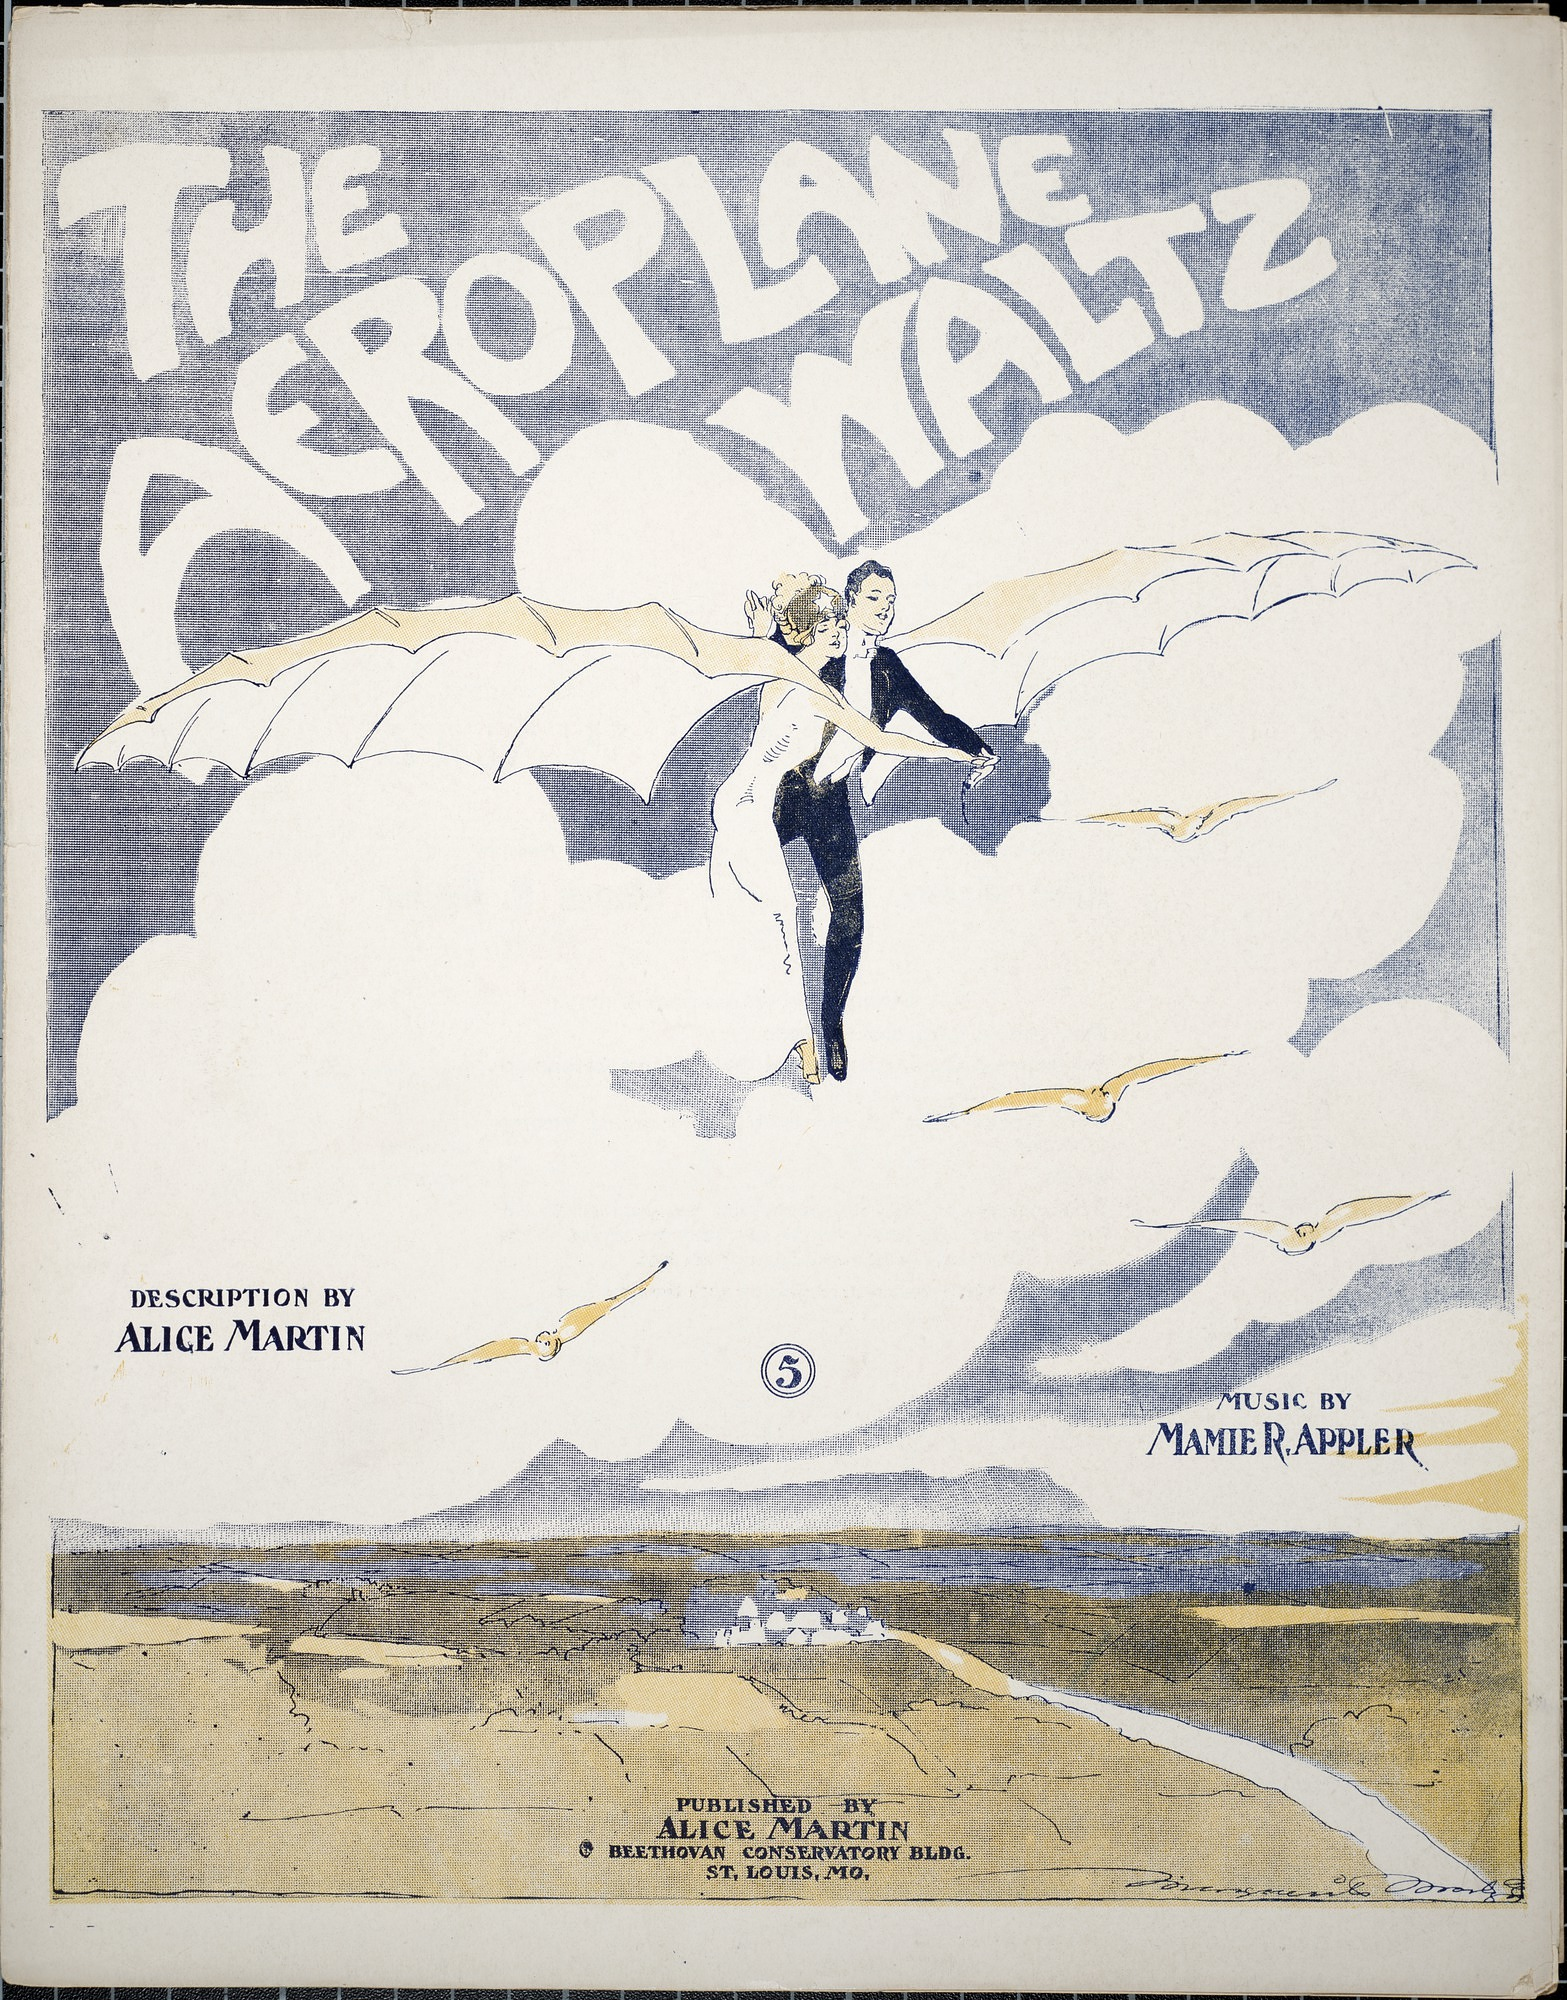 The aeroplane waltz / description by Alice Martin ; music by Mamie R. Appler